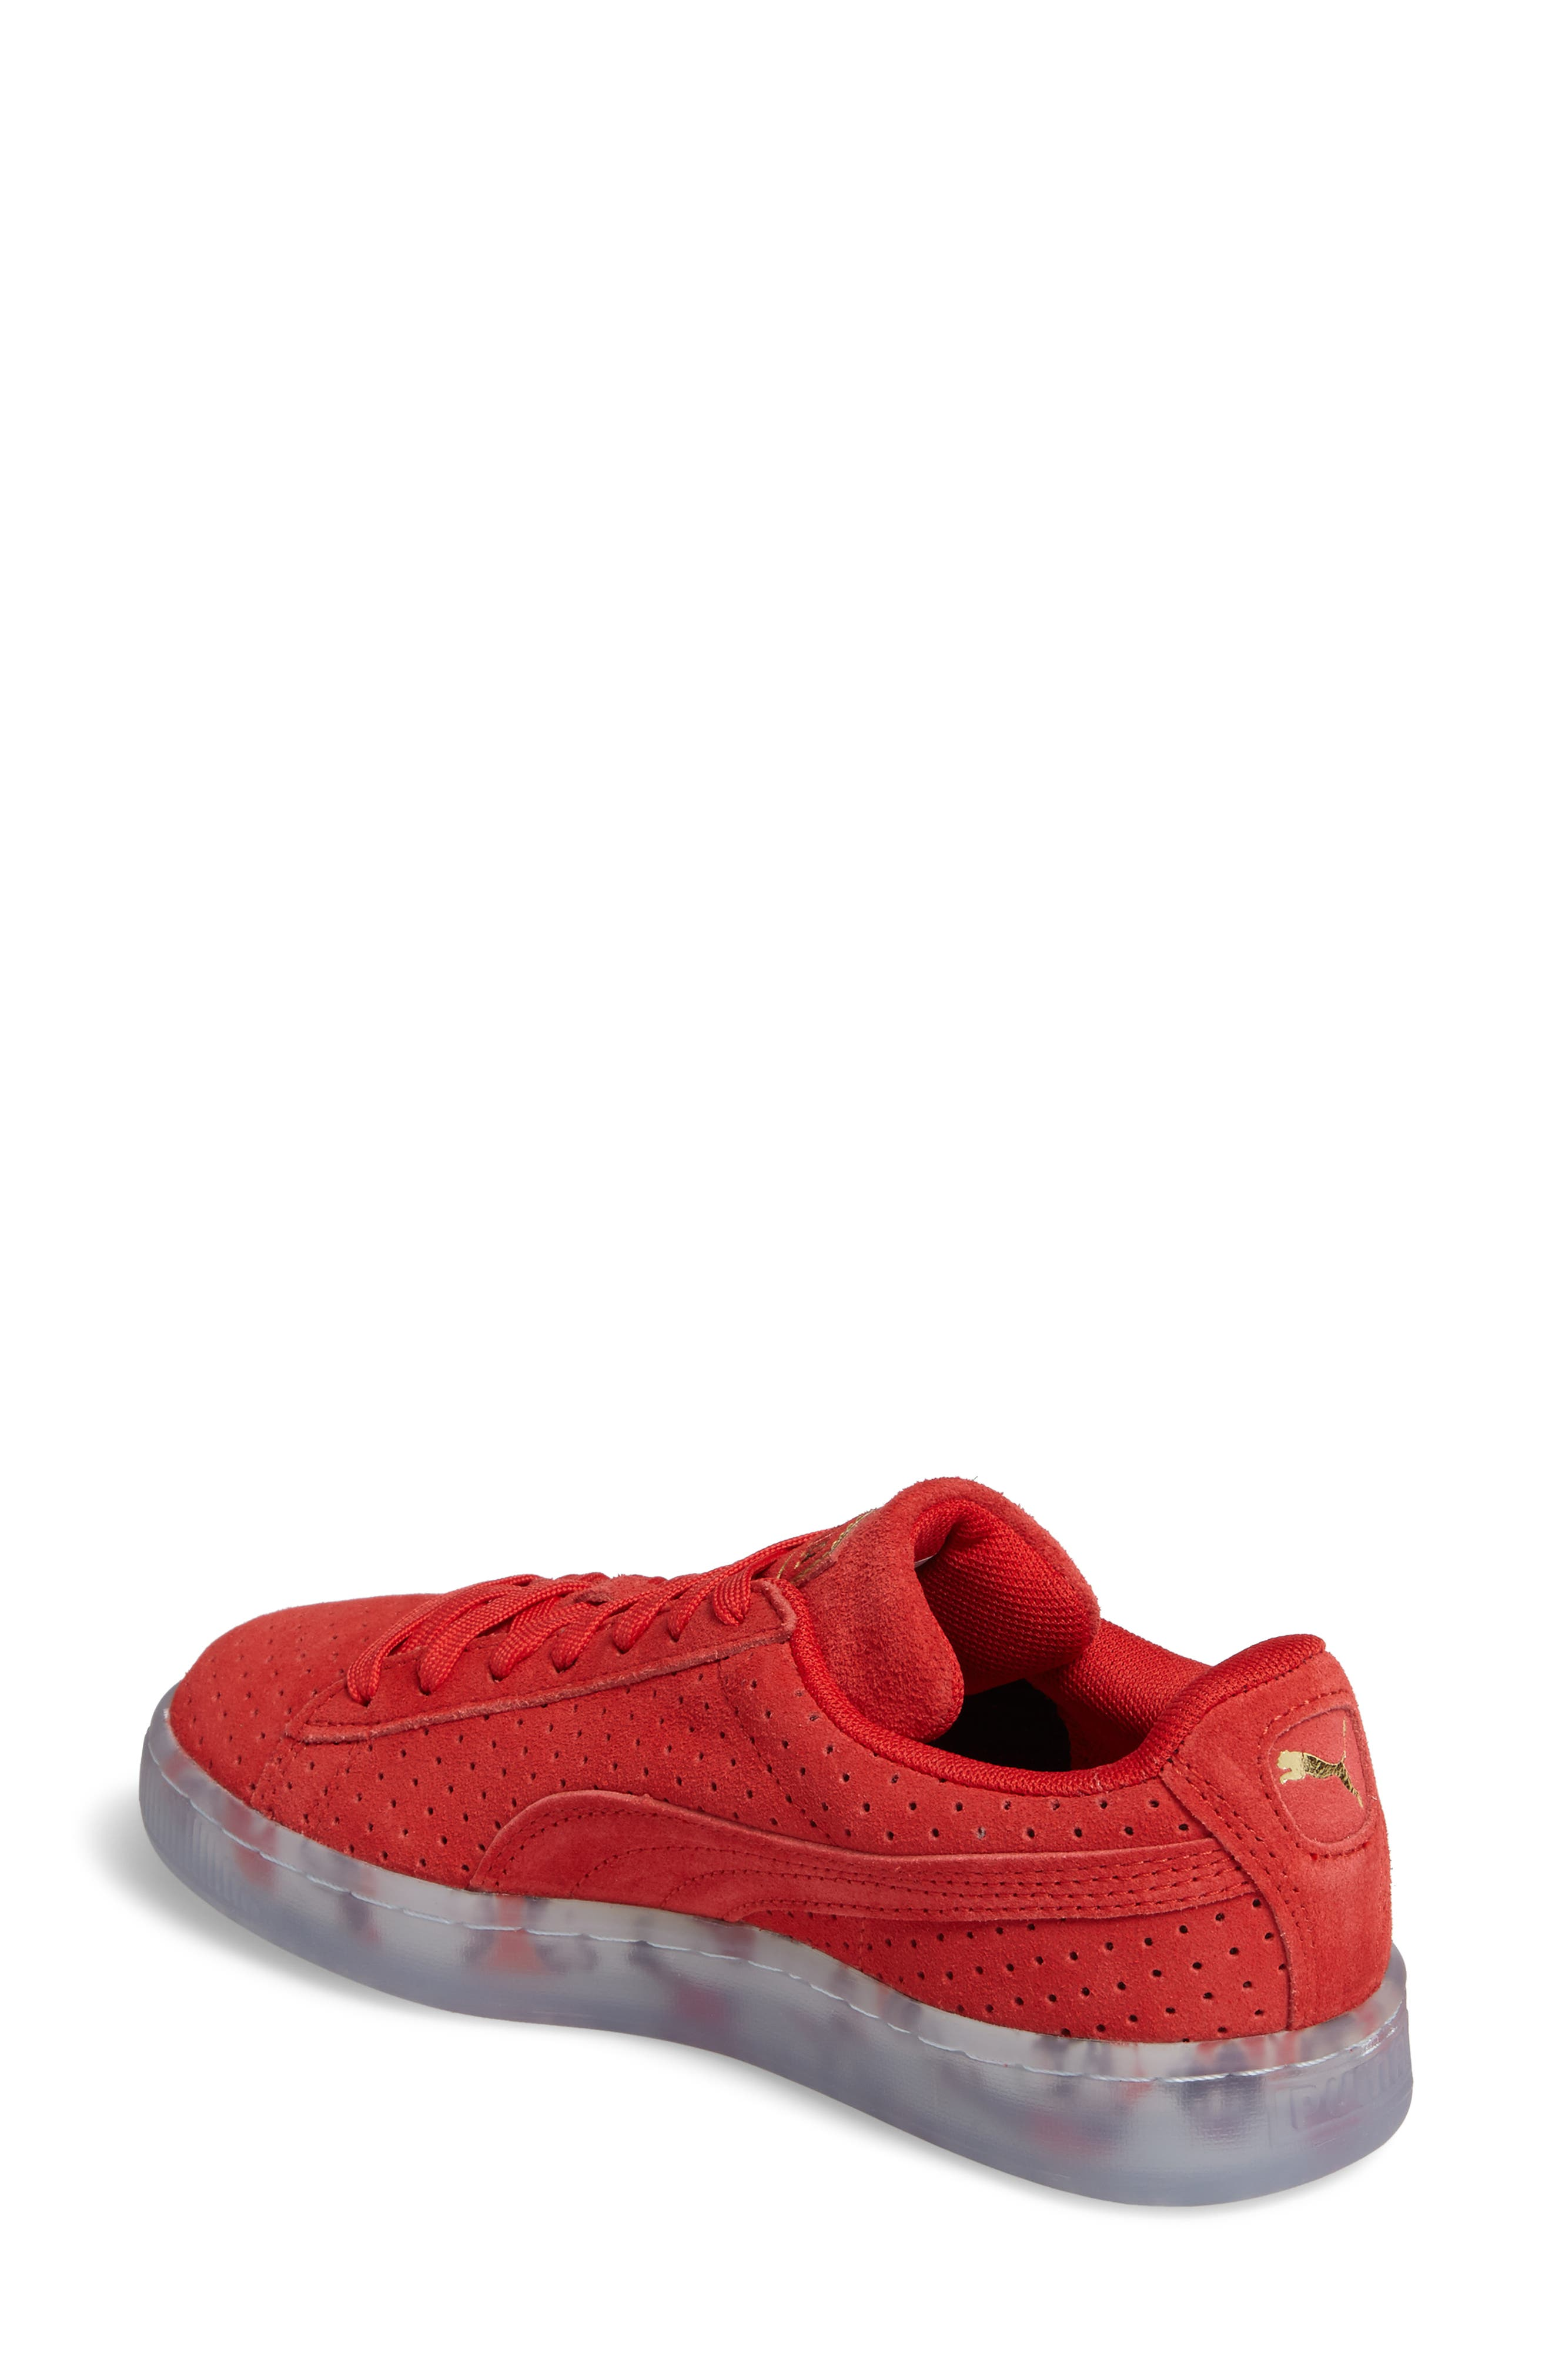 Suede Classic Perforated Sneaker,                             Alternate thumbnail 2, color,                             600